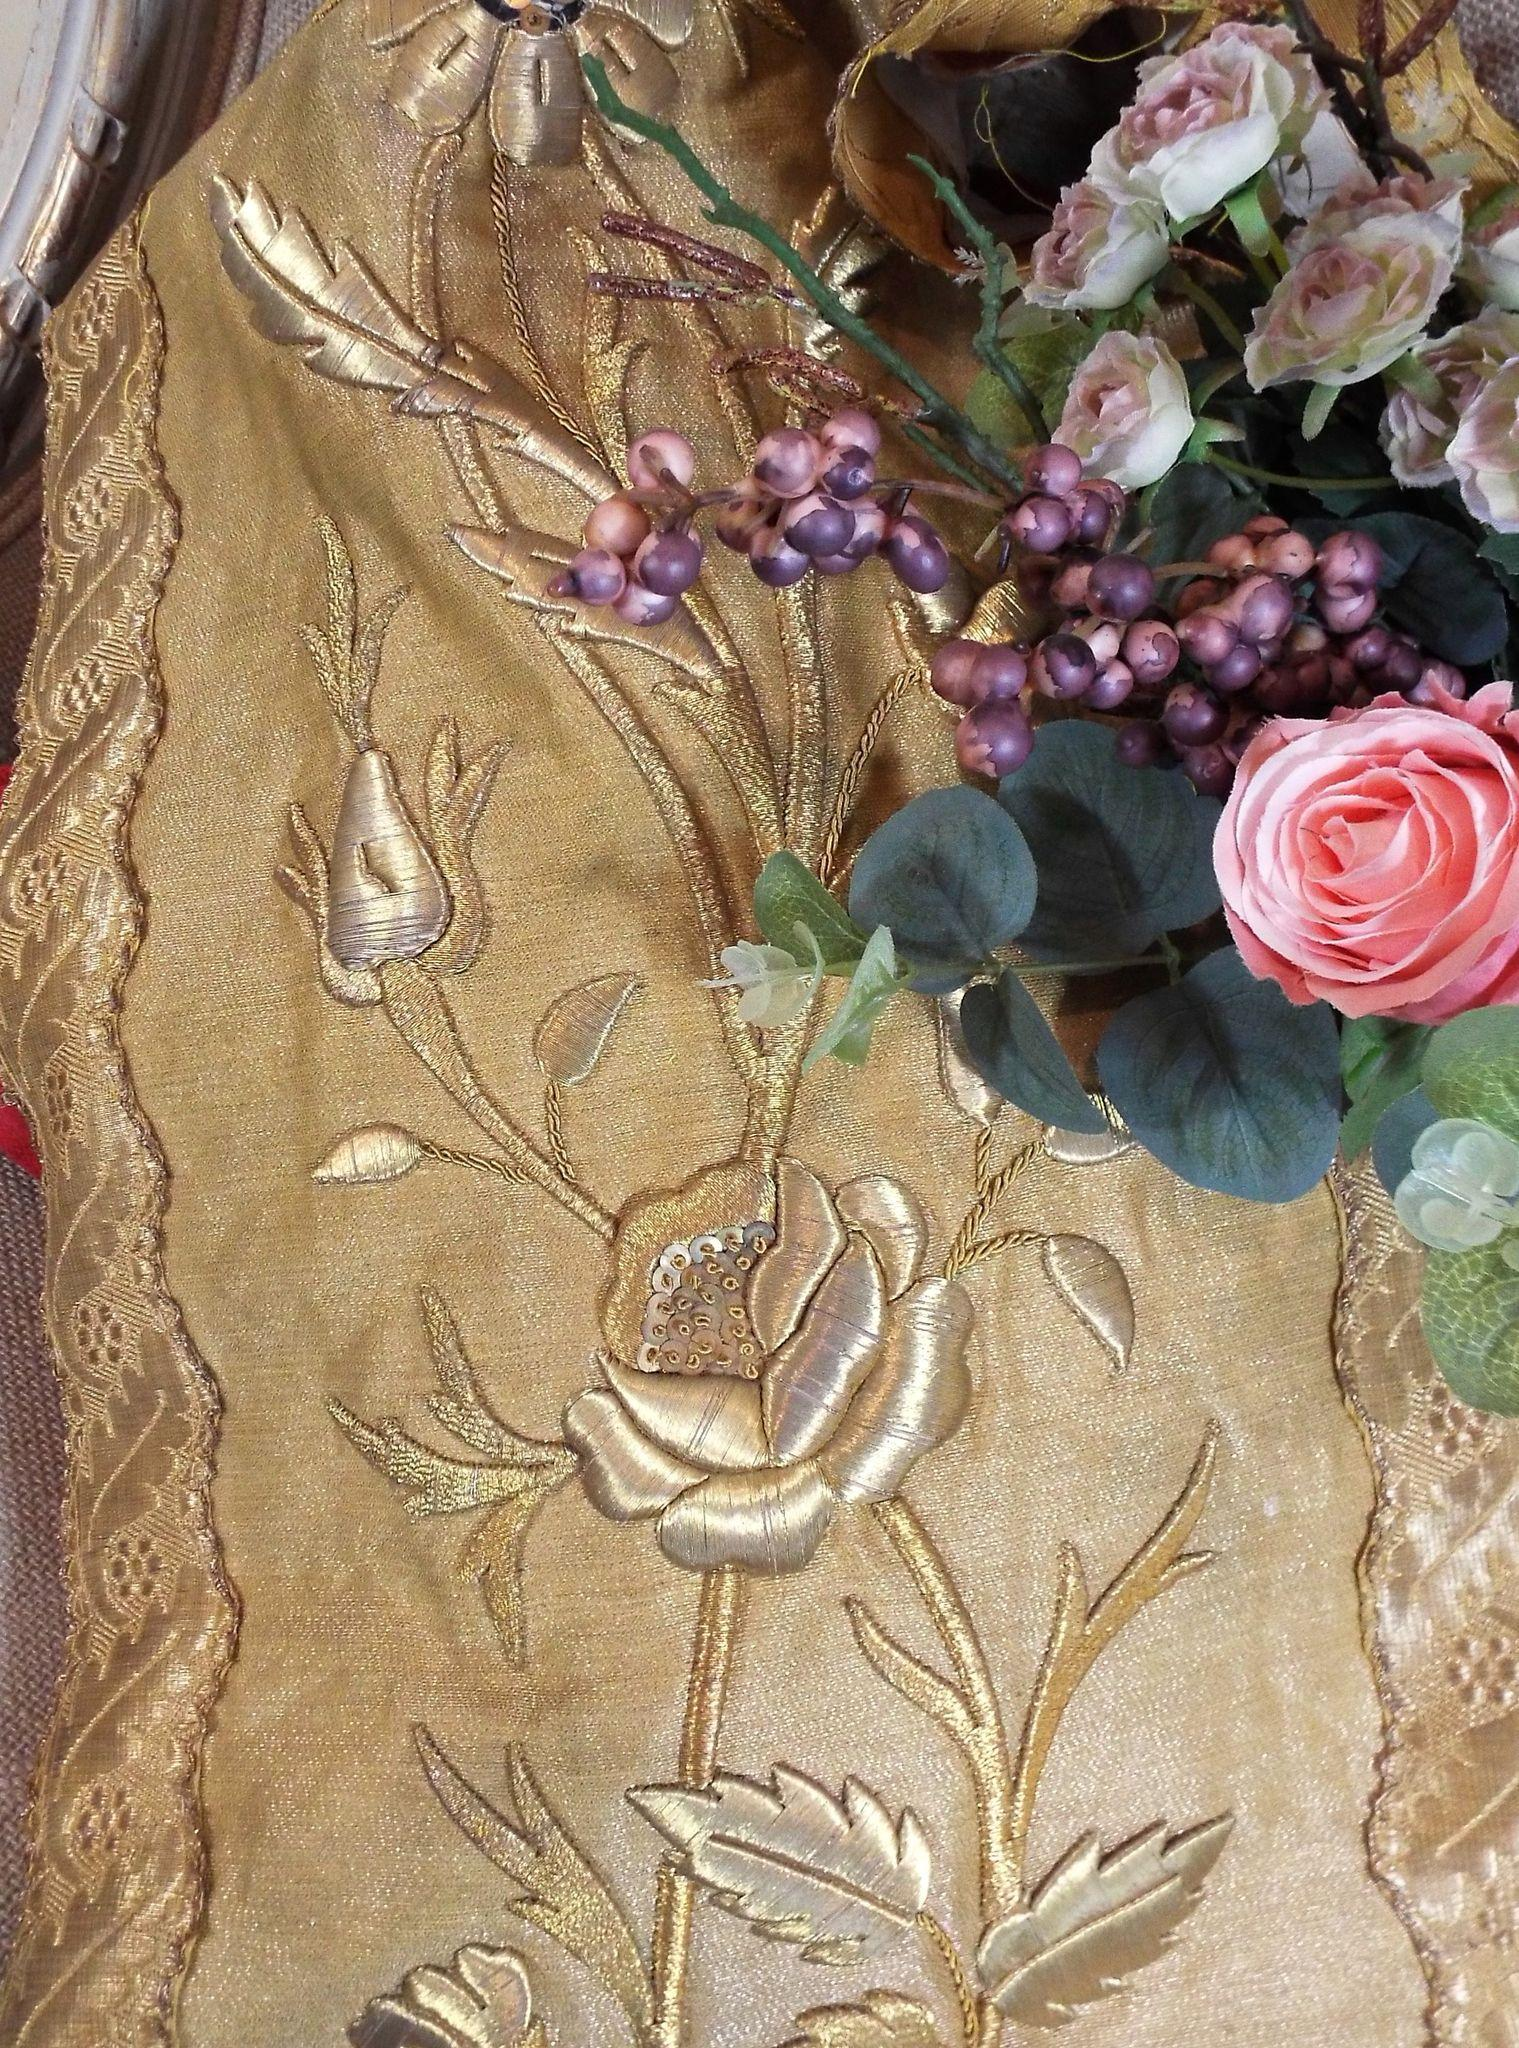 Antique French Floral Panel Gold Metallic Stumpwork Embroidery Roses